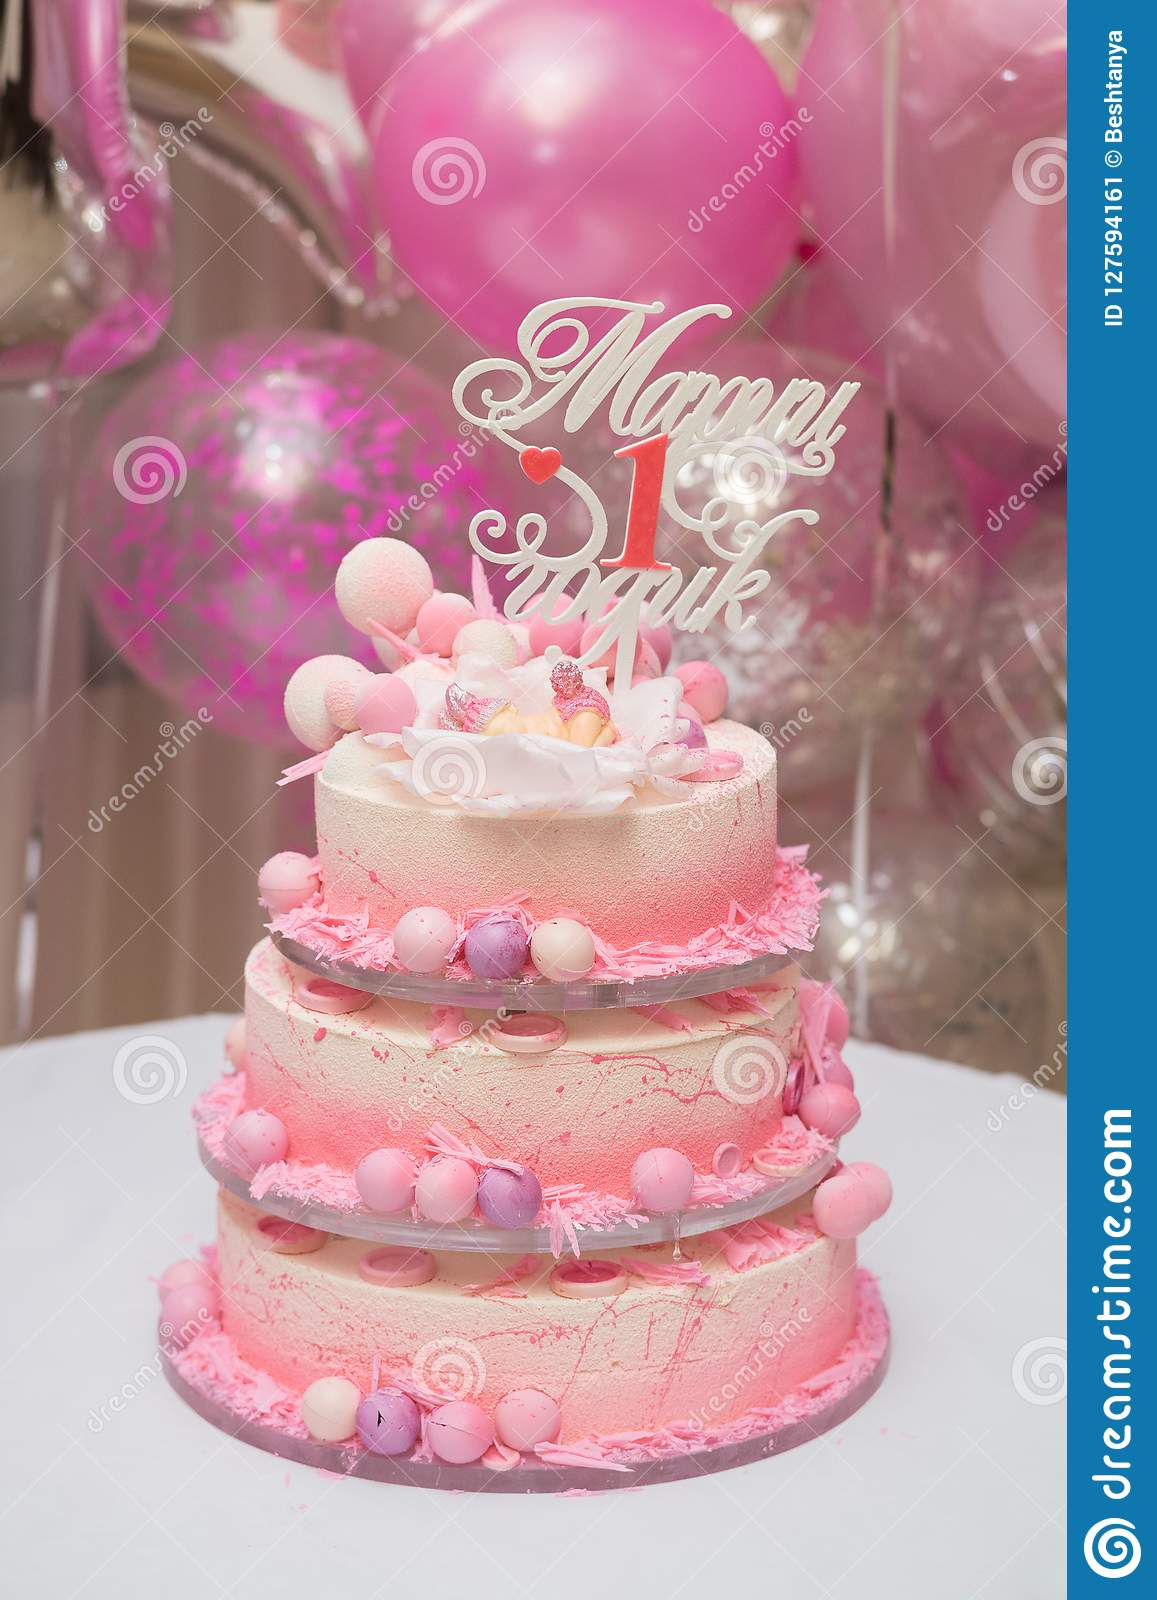 Swell First Birthday Cake Beautiful Cake For The First Birthday Of The Funny Birthday Cards Online Inifodamsfinfo